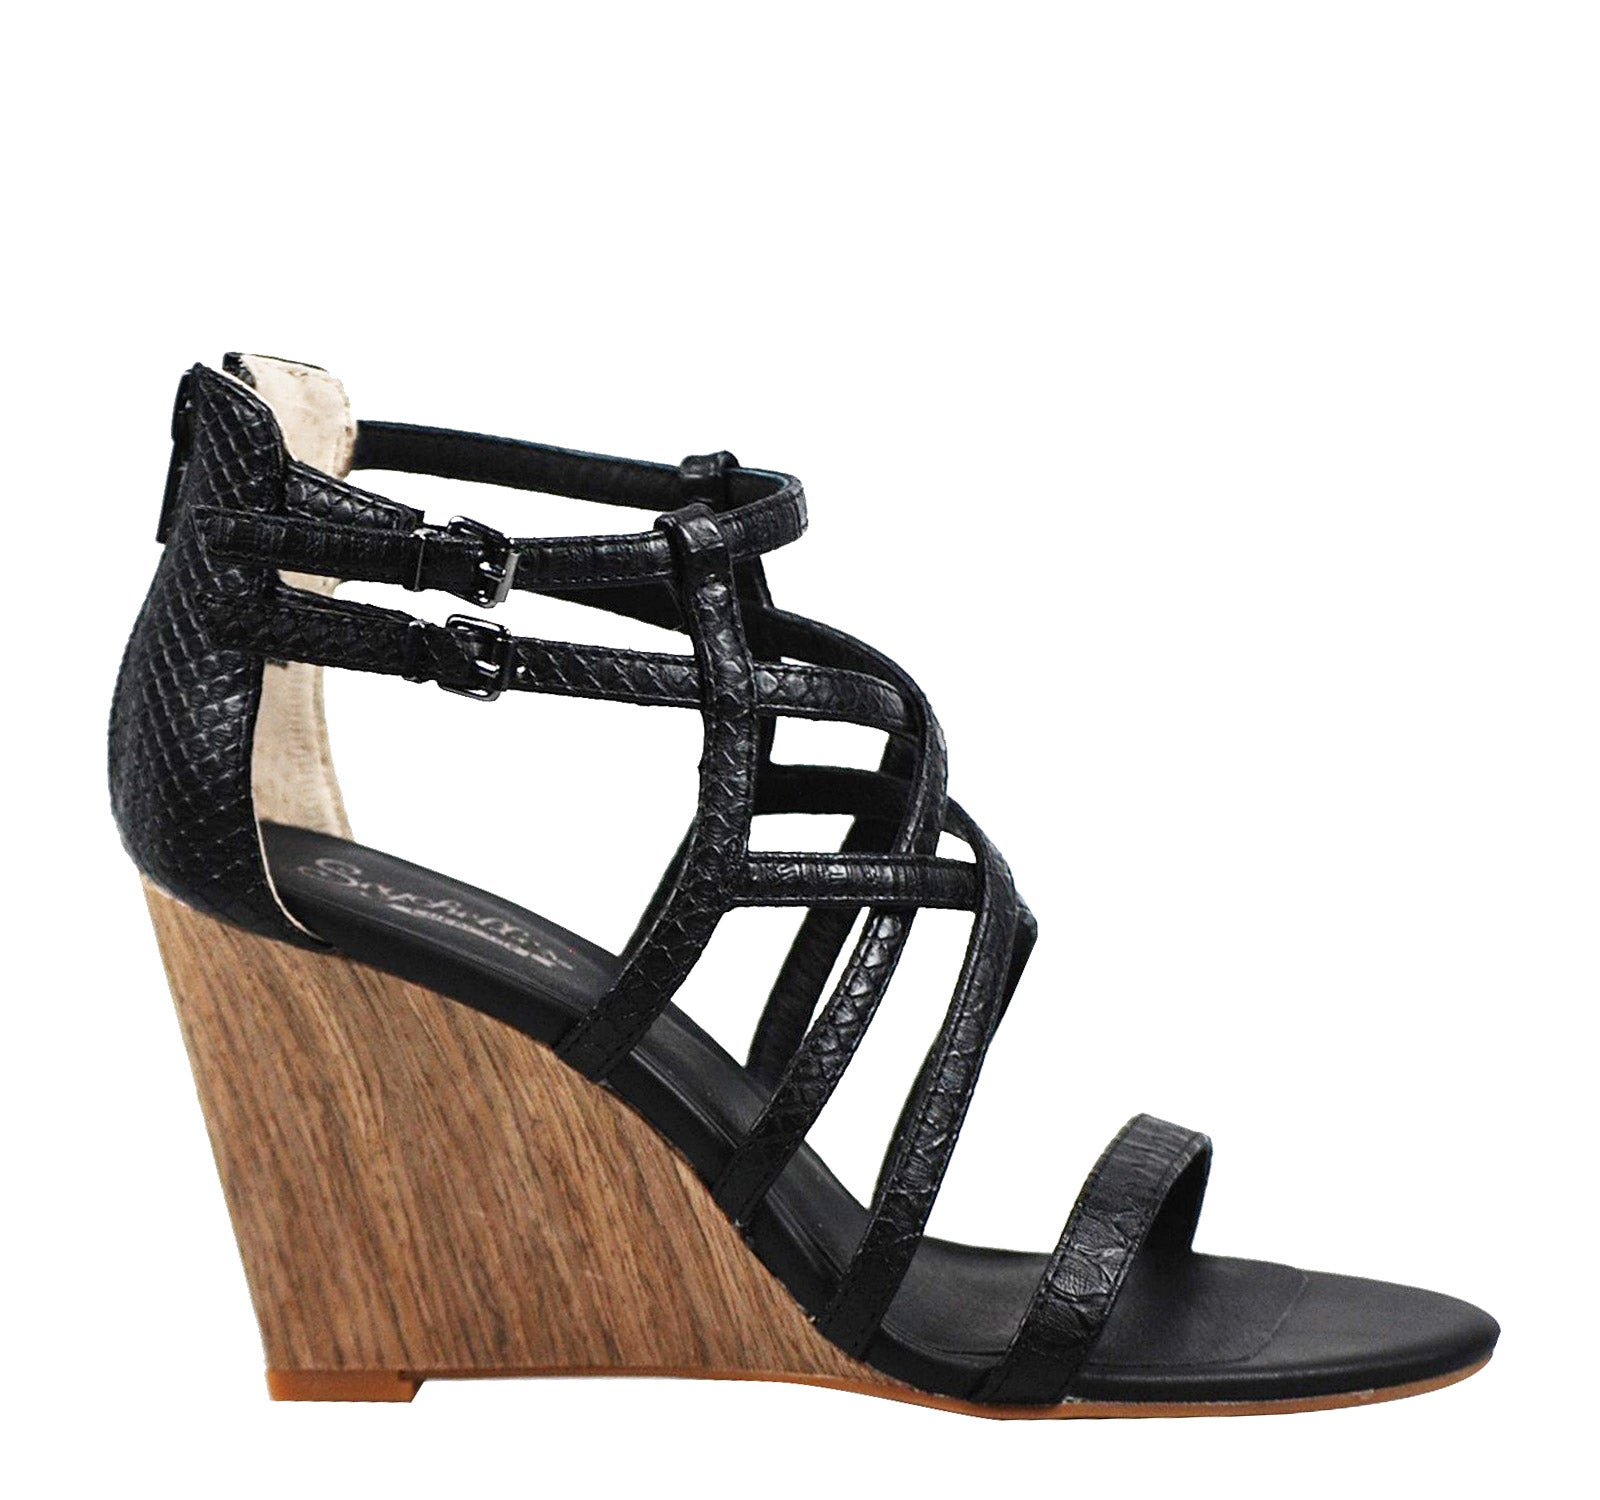 Seychelles Illustrious Sandal Women's - Black - Seychelles - On The EDGE